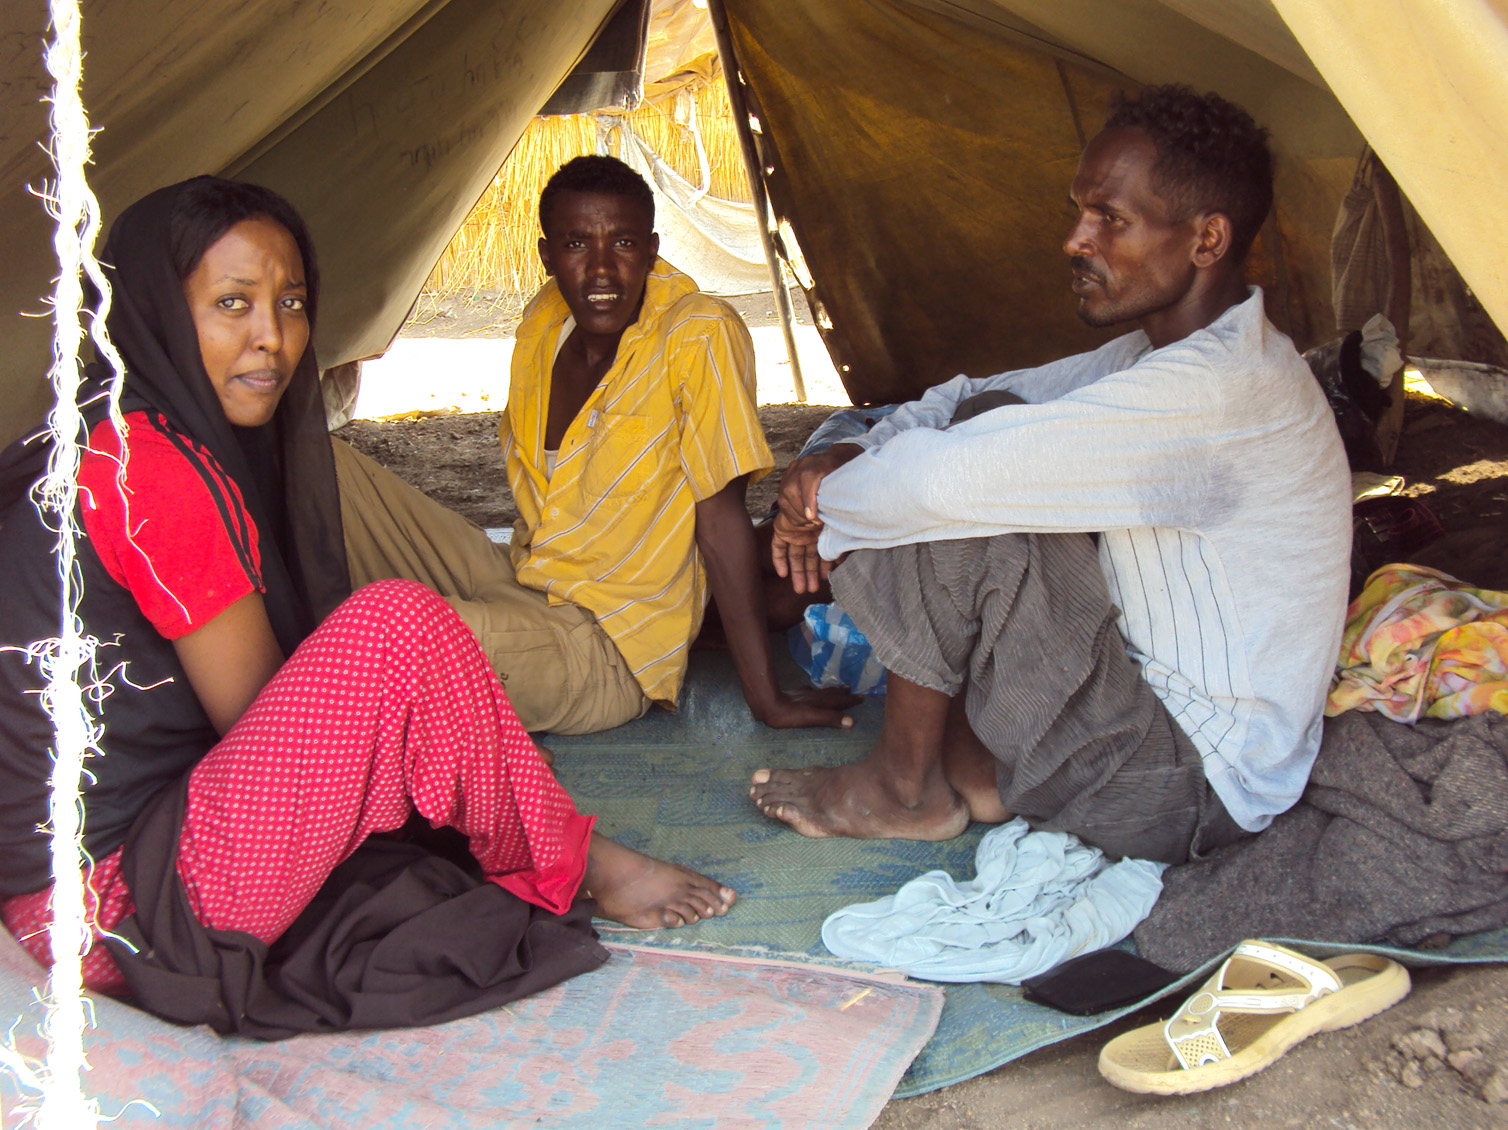 Shagarab Camp - Turmesgy Gabr Selassie (right) fled the Eritrean army 3 months ago. He shares this tent with 11 other men and women where they sleep on the ground. The only luxury in their tent is the thin sheets with which they cover themselves